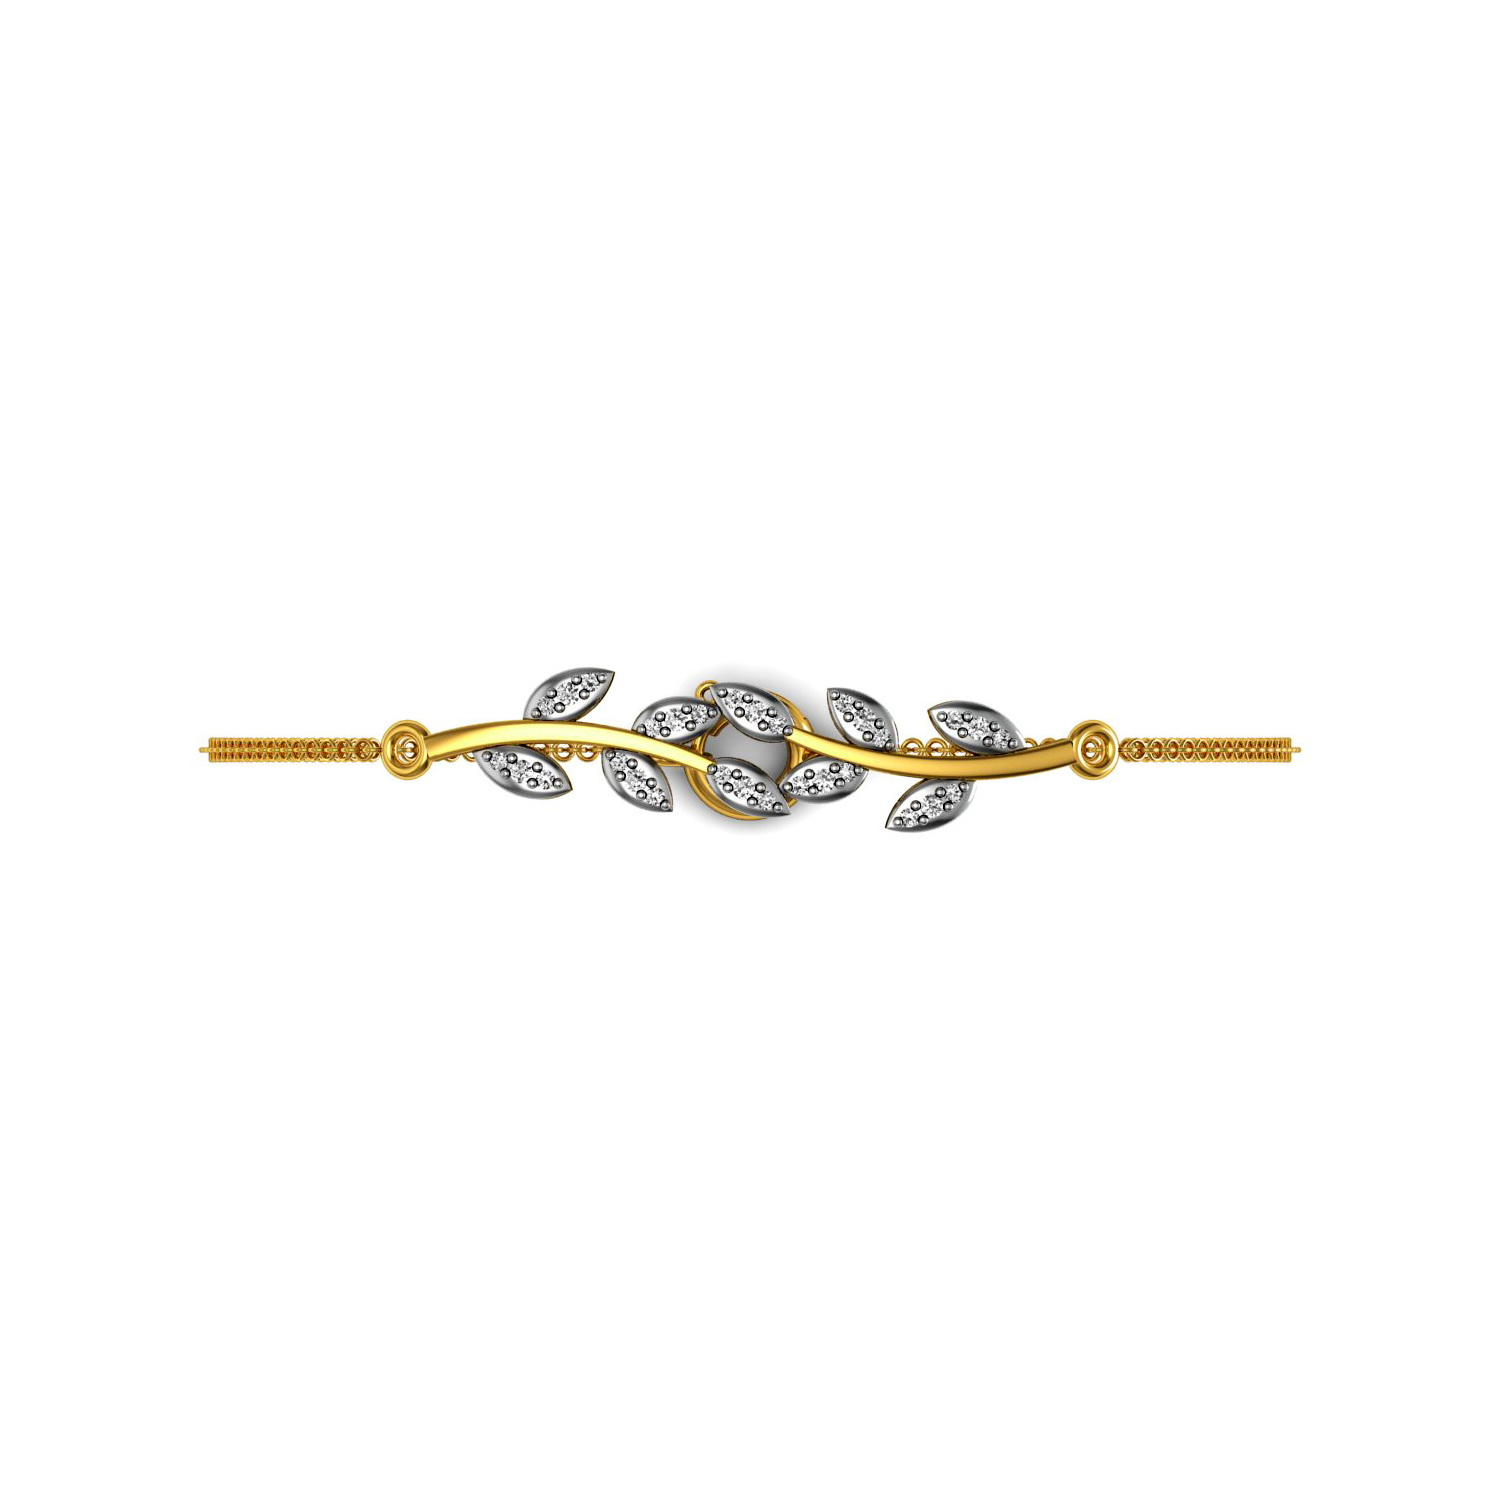 Solid gold diamond feather style chain bracelet